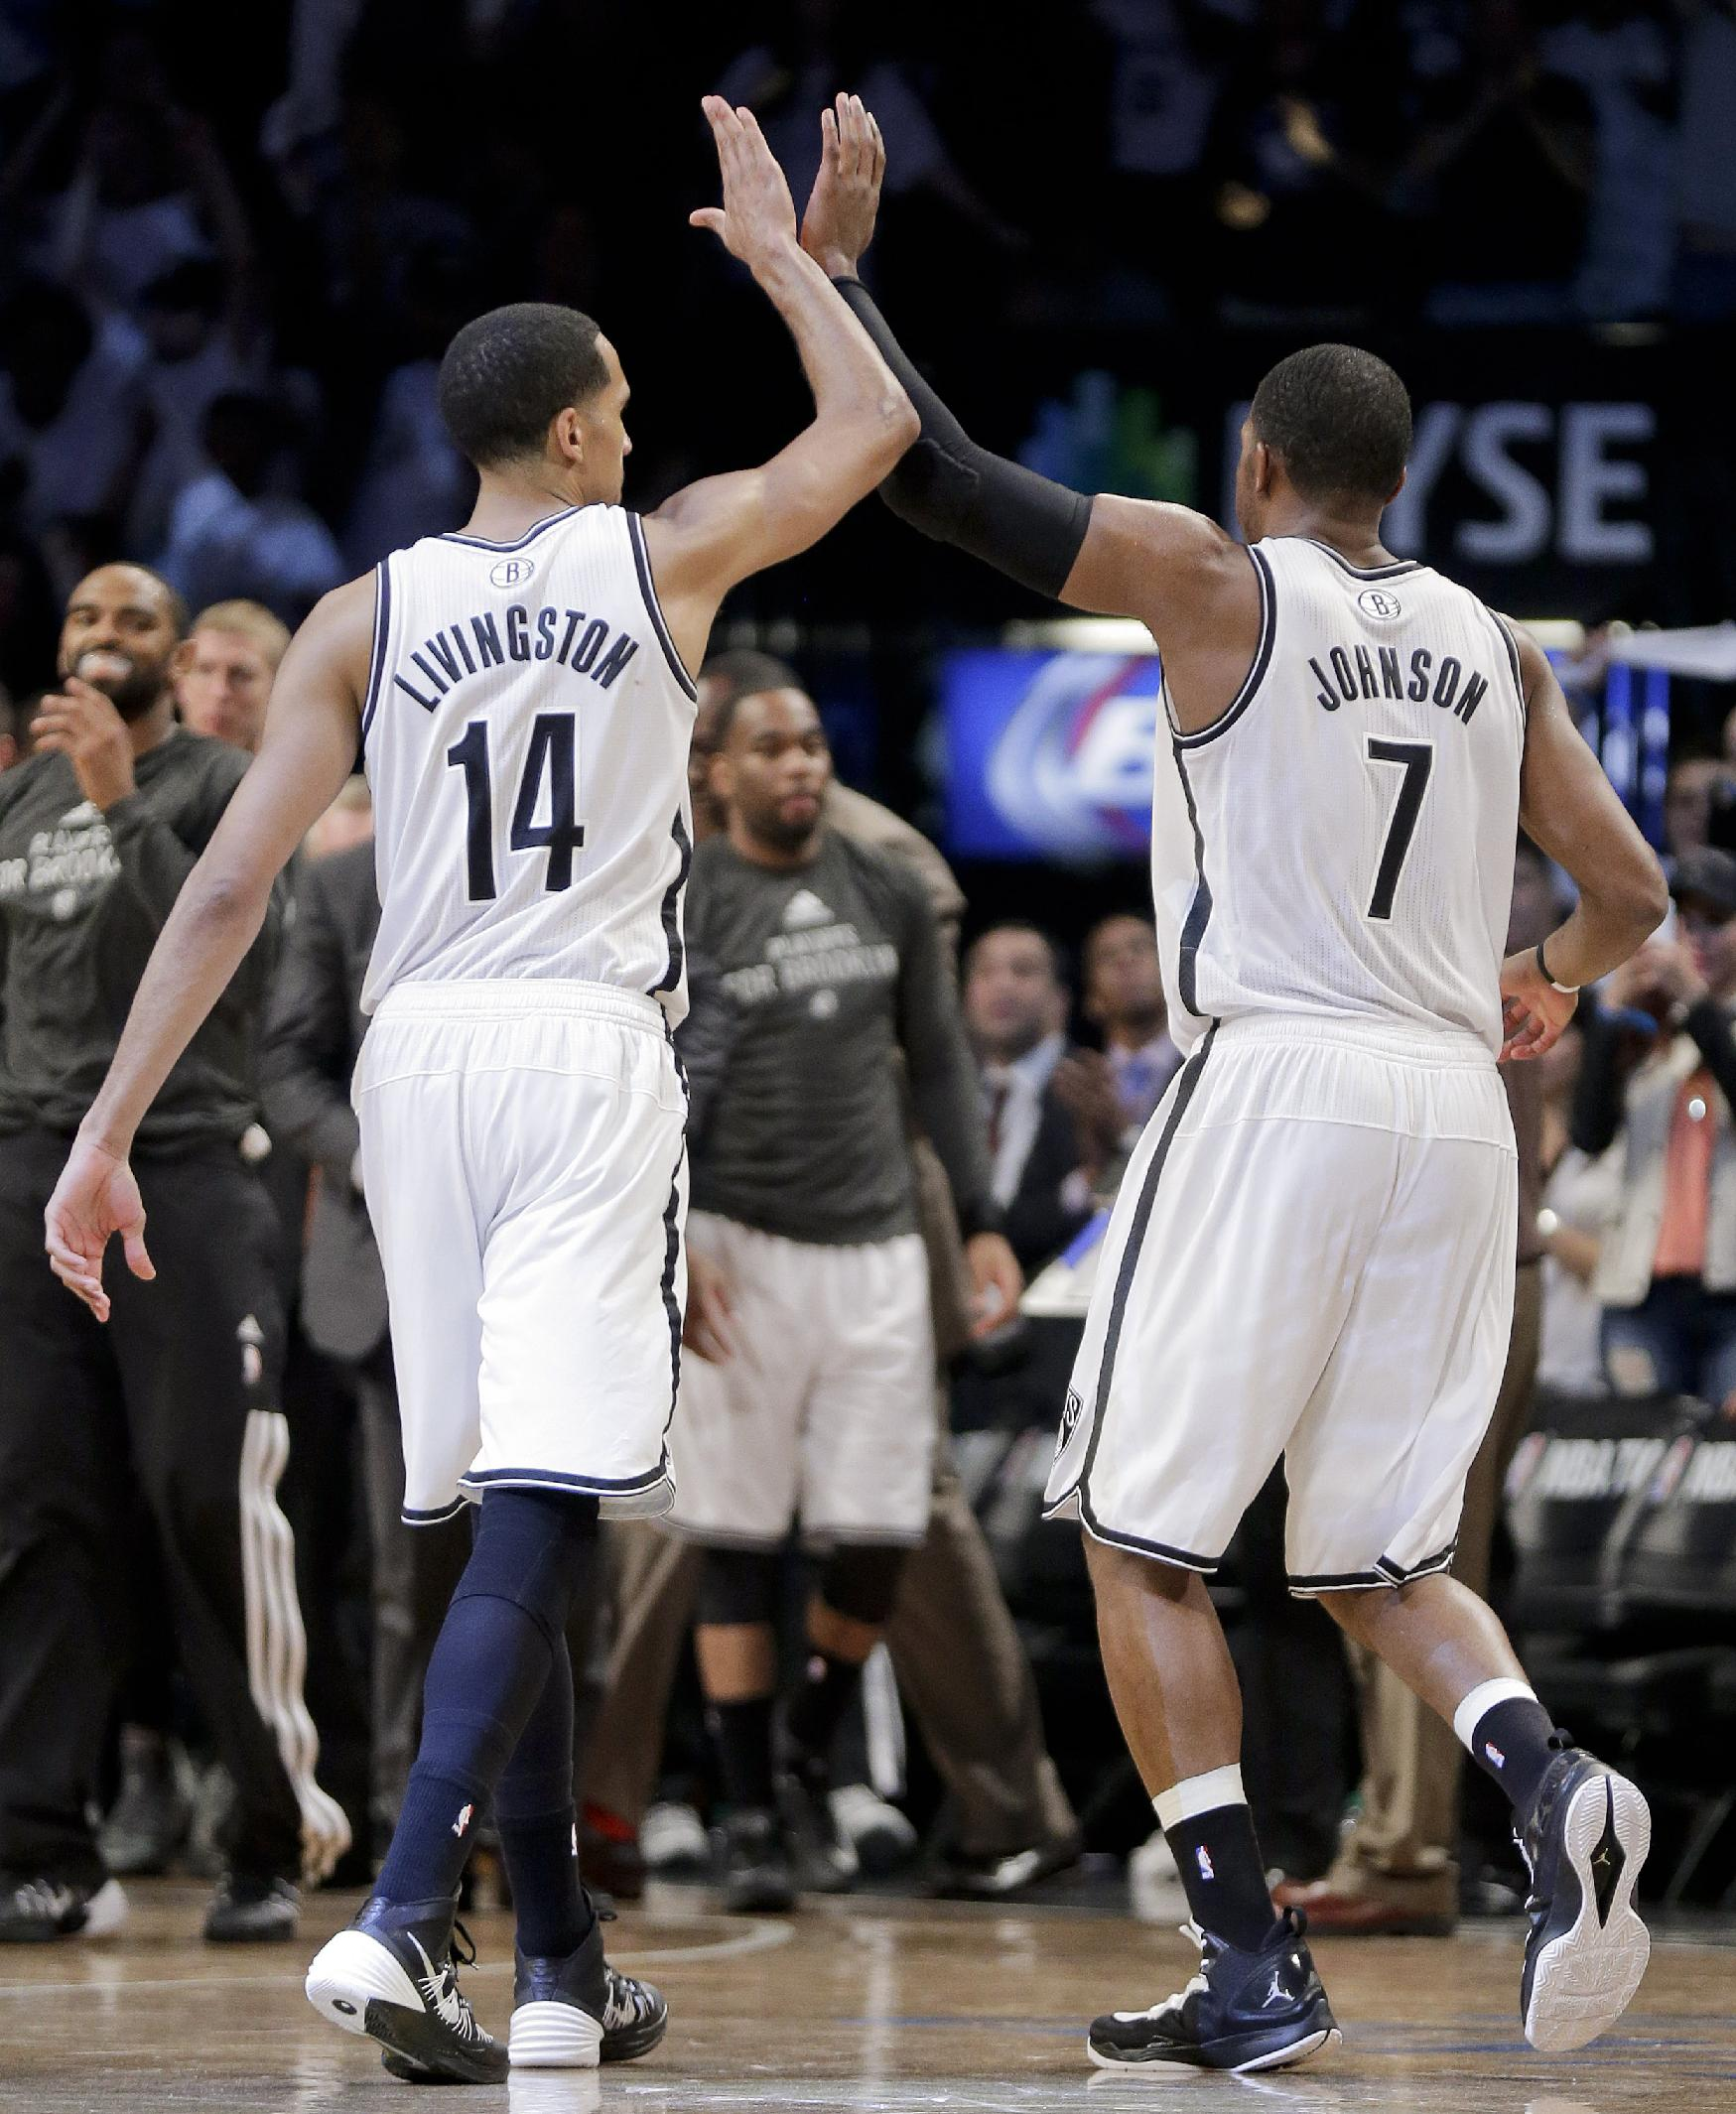 Brooklyn Nets guard Shaun Livingston (14) and guard Joe Johnson (7) high-five as they walk to the bench during timeout in the fourth quarter against the Miami Heat during Game 3 of an Eastern Conference semifinal NBA playoff basketball game on Saturday, May 10, 2014, in New York. The Nets won 104-90